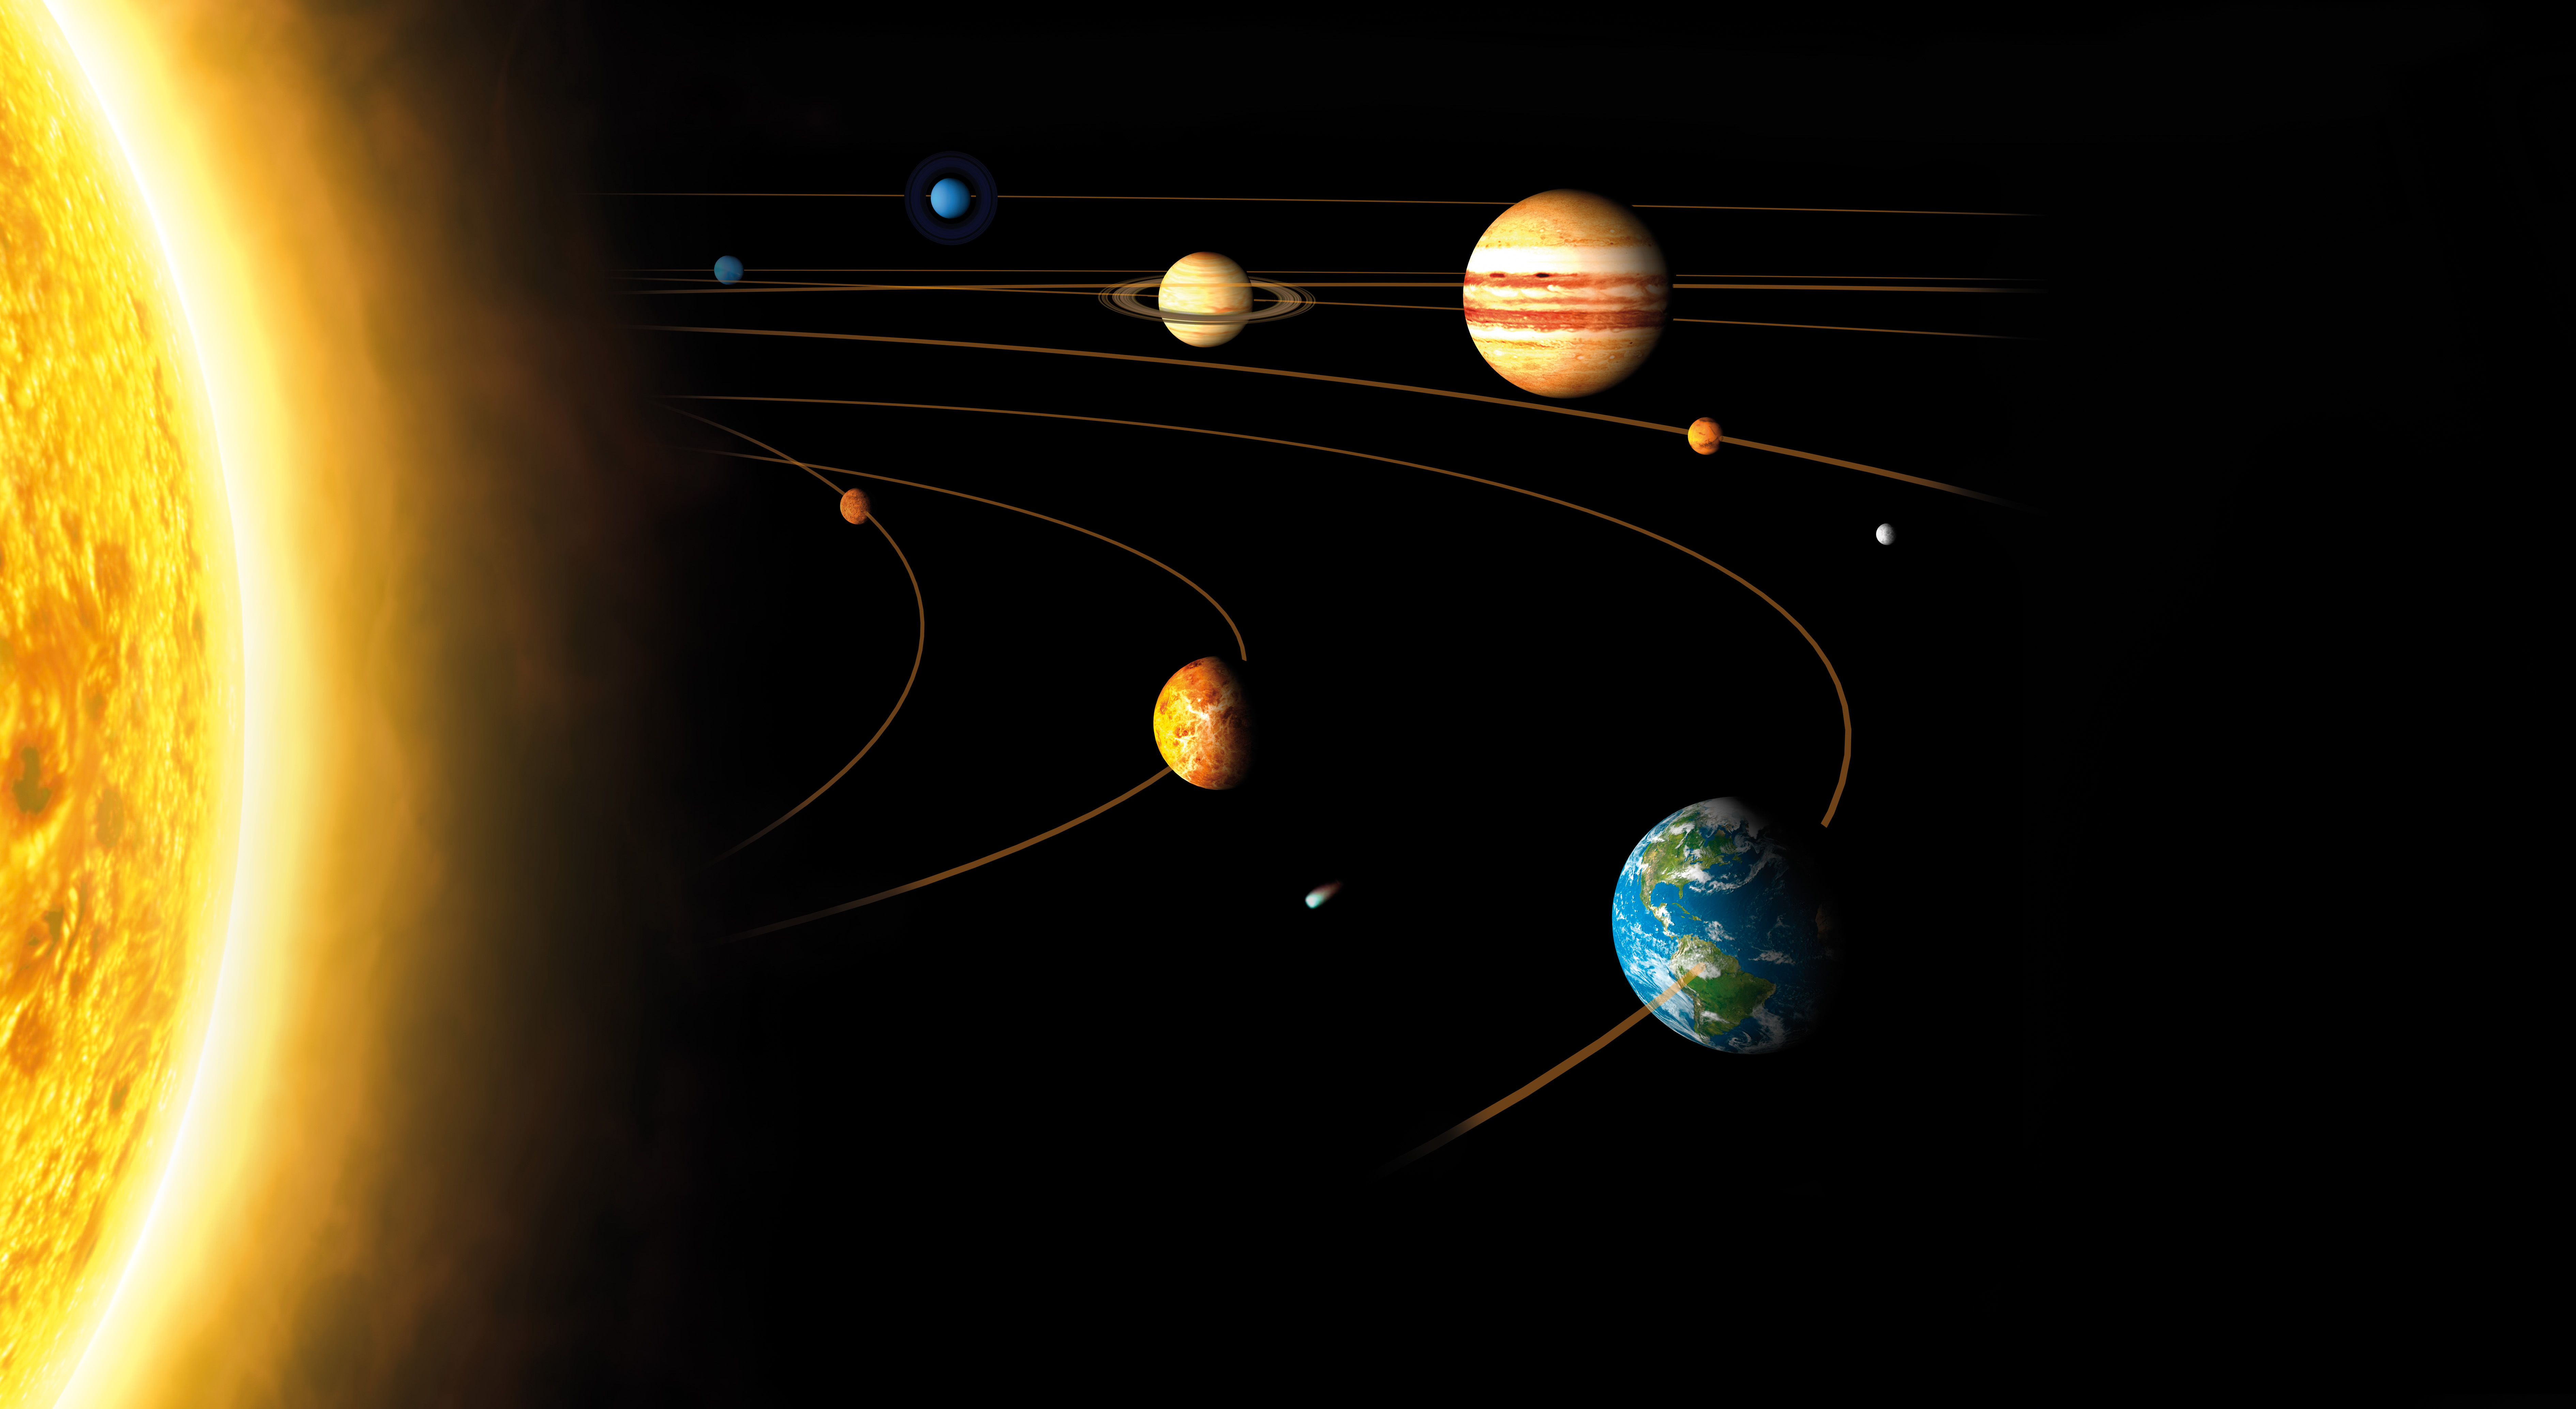 planets and solar system - HD2048×1016